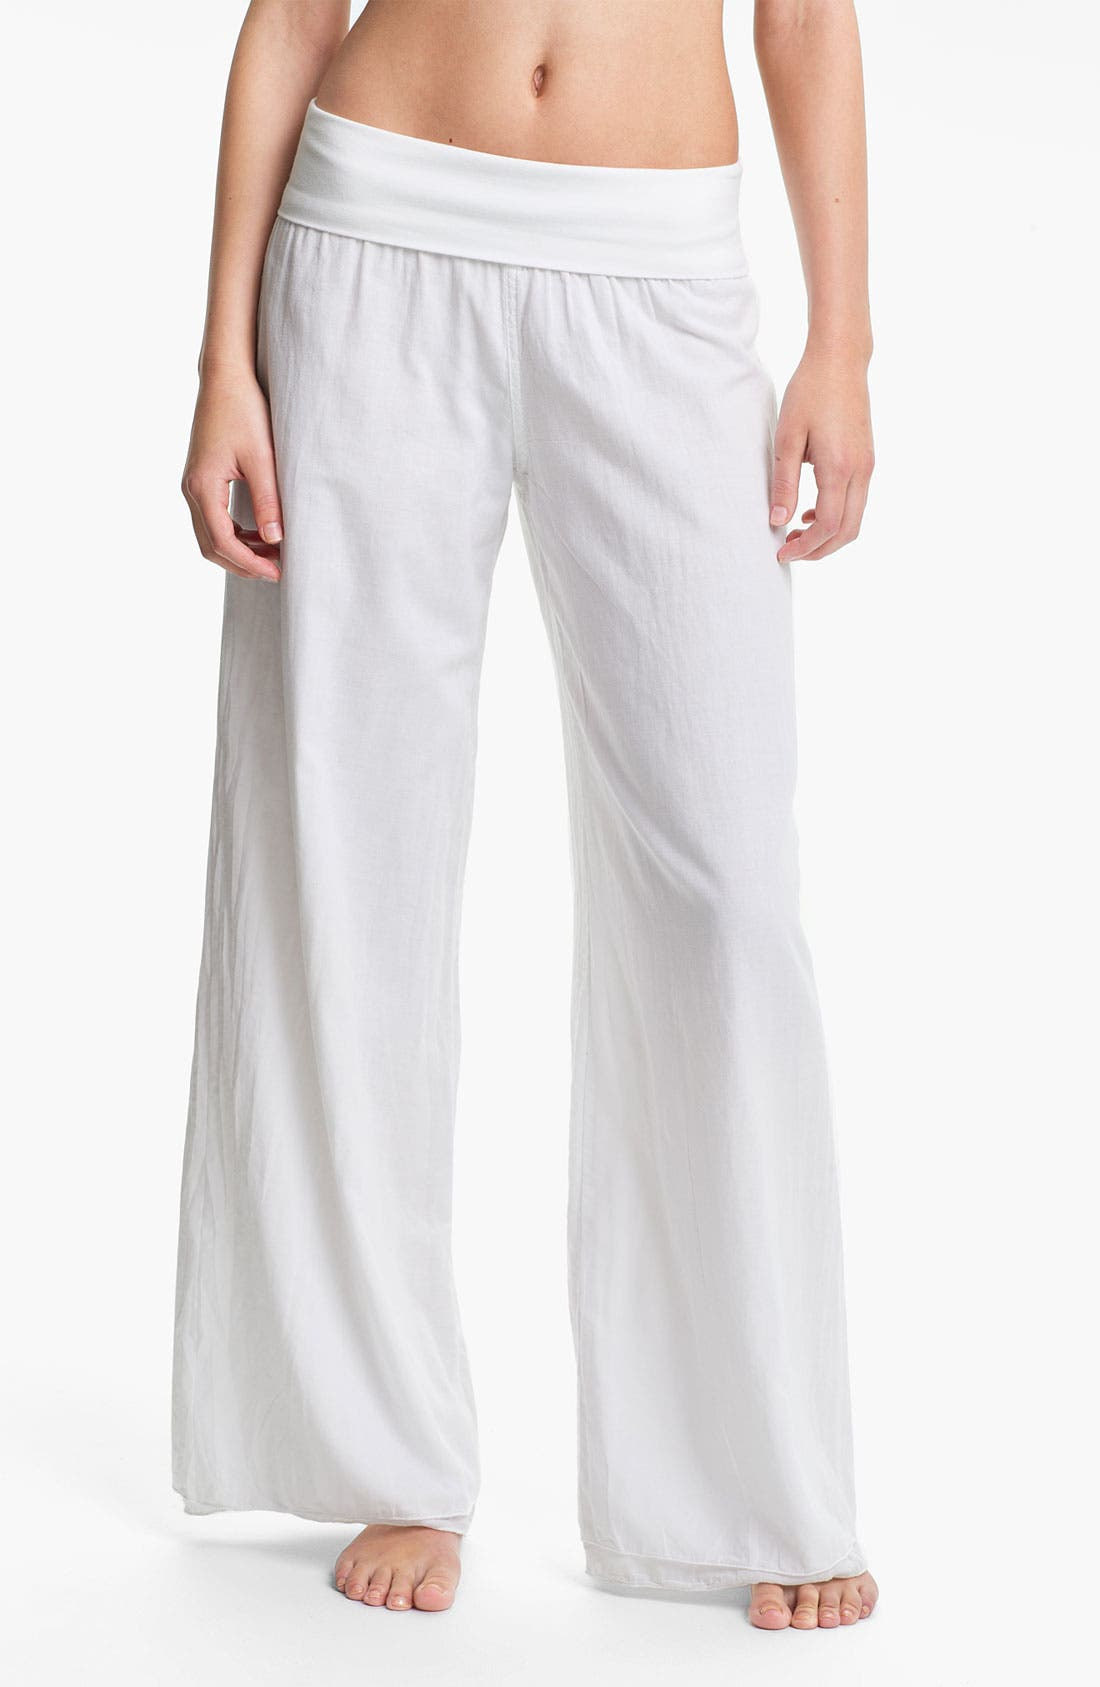 Alternate Image 1 Selected - Hard Tail Voile Pants